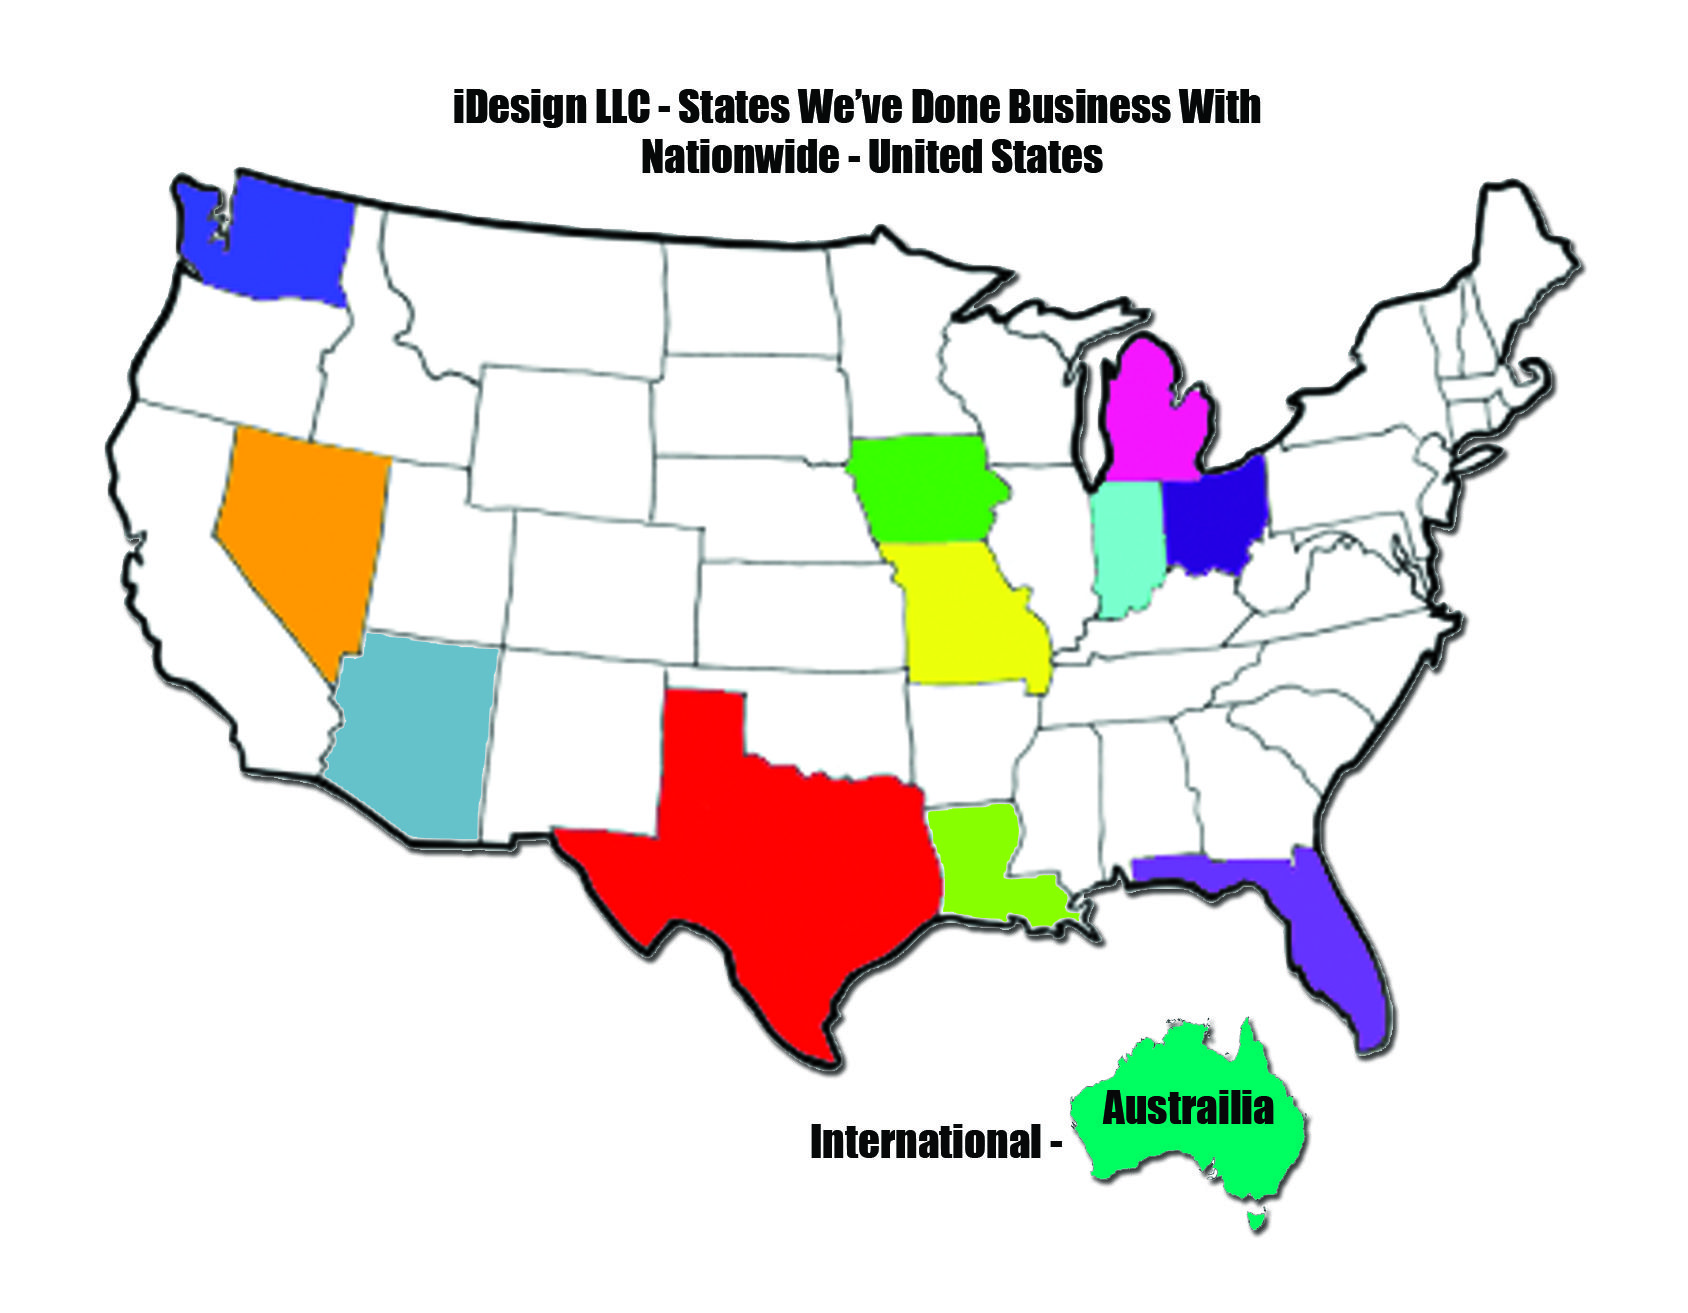 Here's where the last two years has taken us!  iDesign LLC does business nationwide and internationally too!!  info@idesignllc.org or 641.740.2747